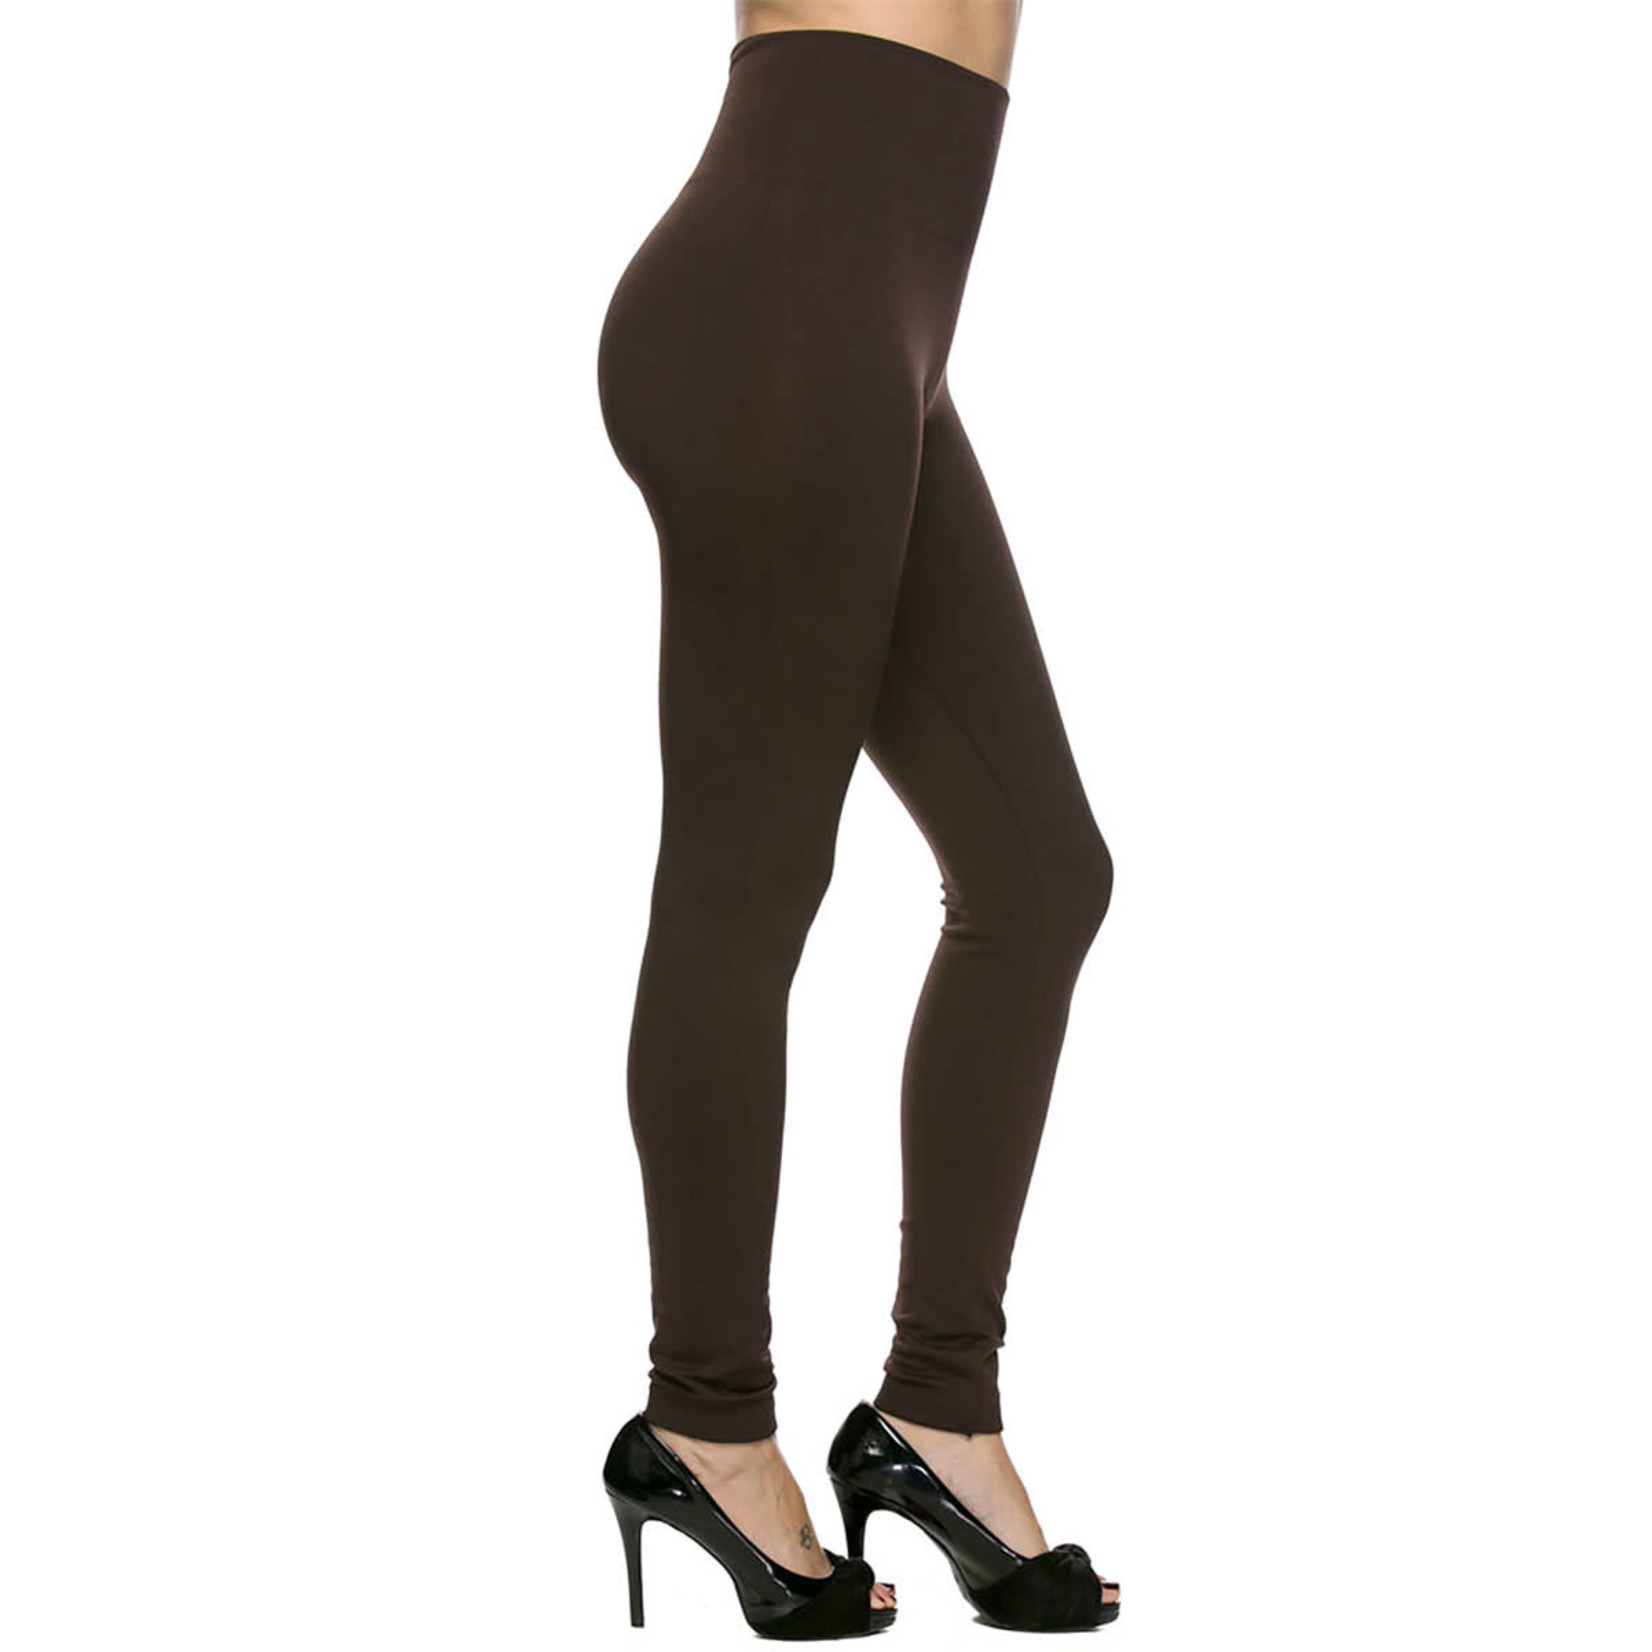 Brown Fleece Lined Leggings With High Waist in Plus Size (XL-2X)